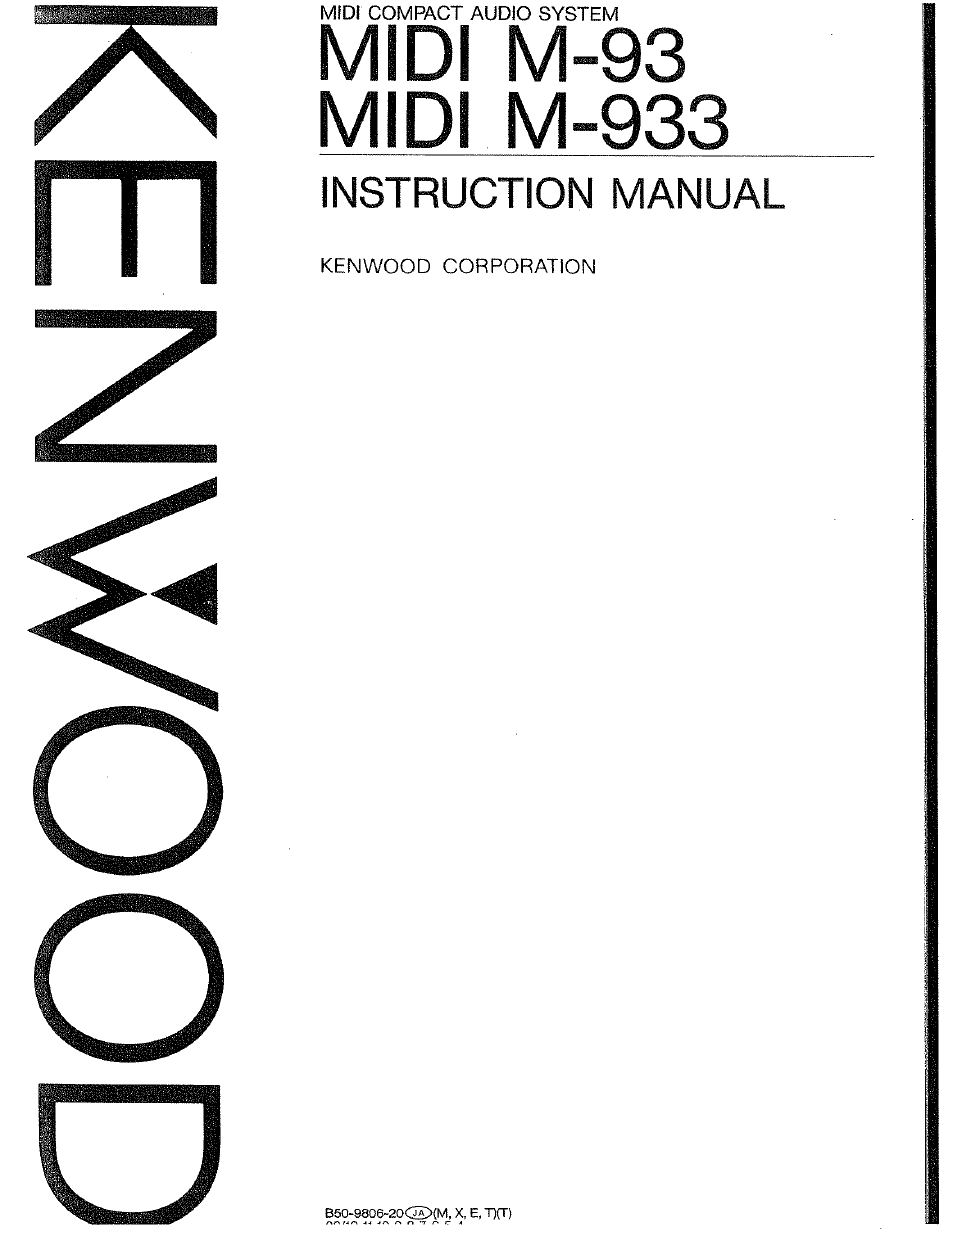 kenwood t 93l owner s manual free pdf download 56 pages rh manualagent com kenwood owners manual for tx3410d kenwood ddx370 owners manual